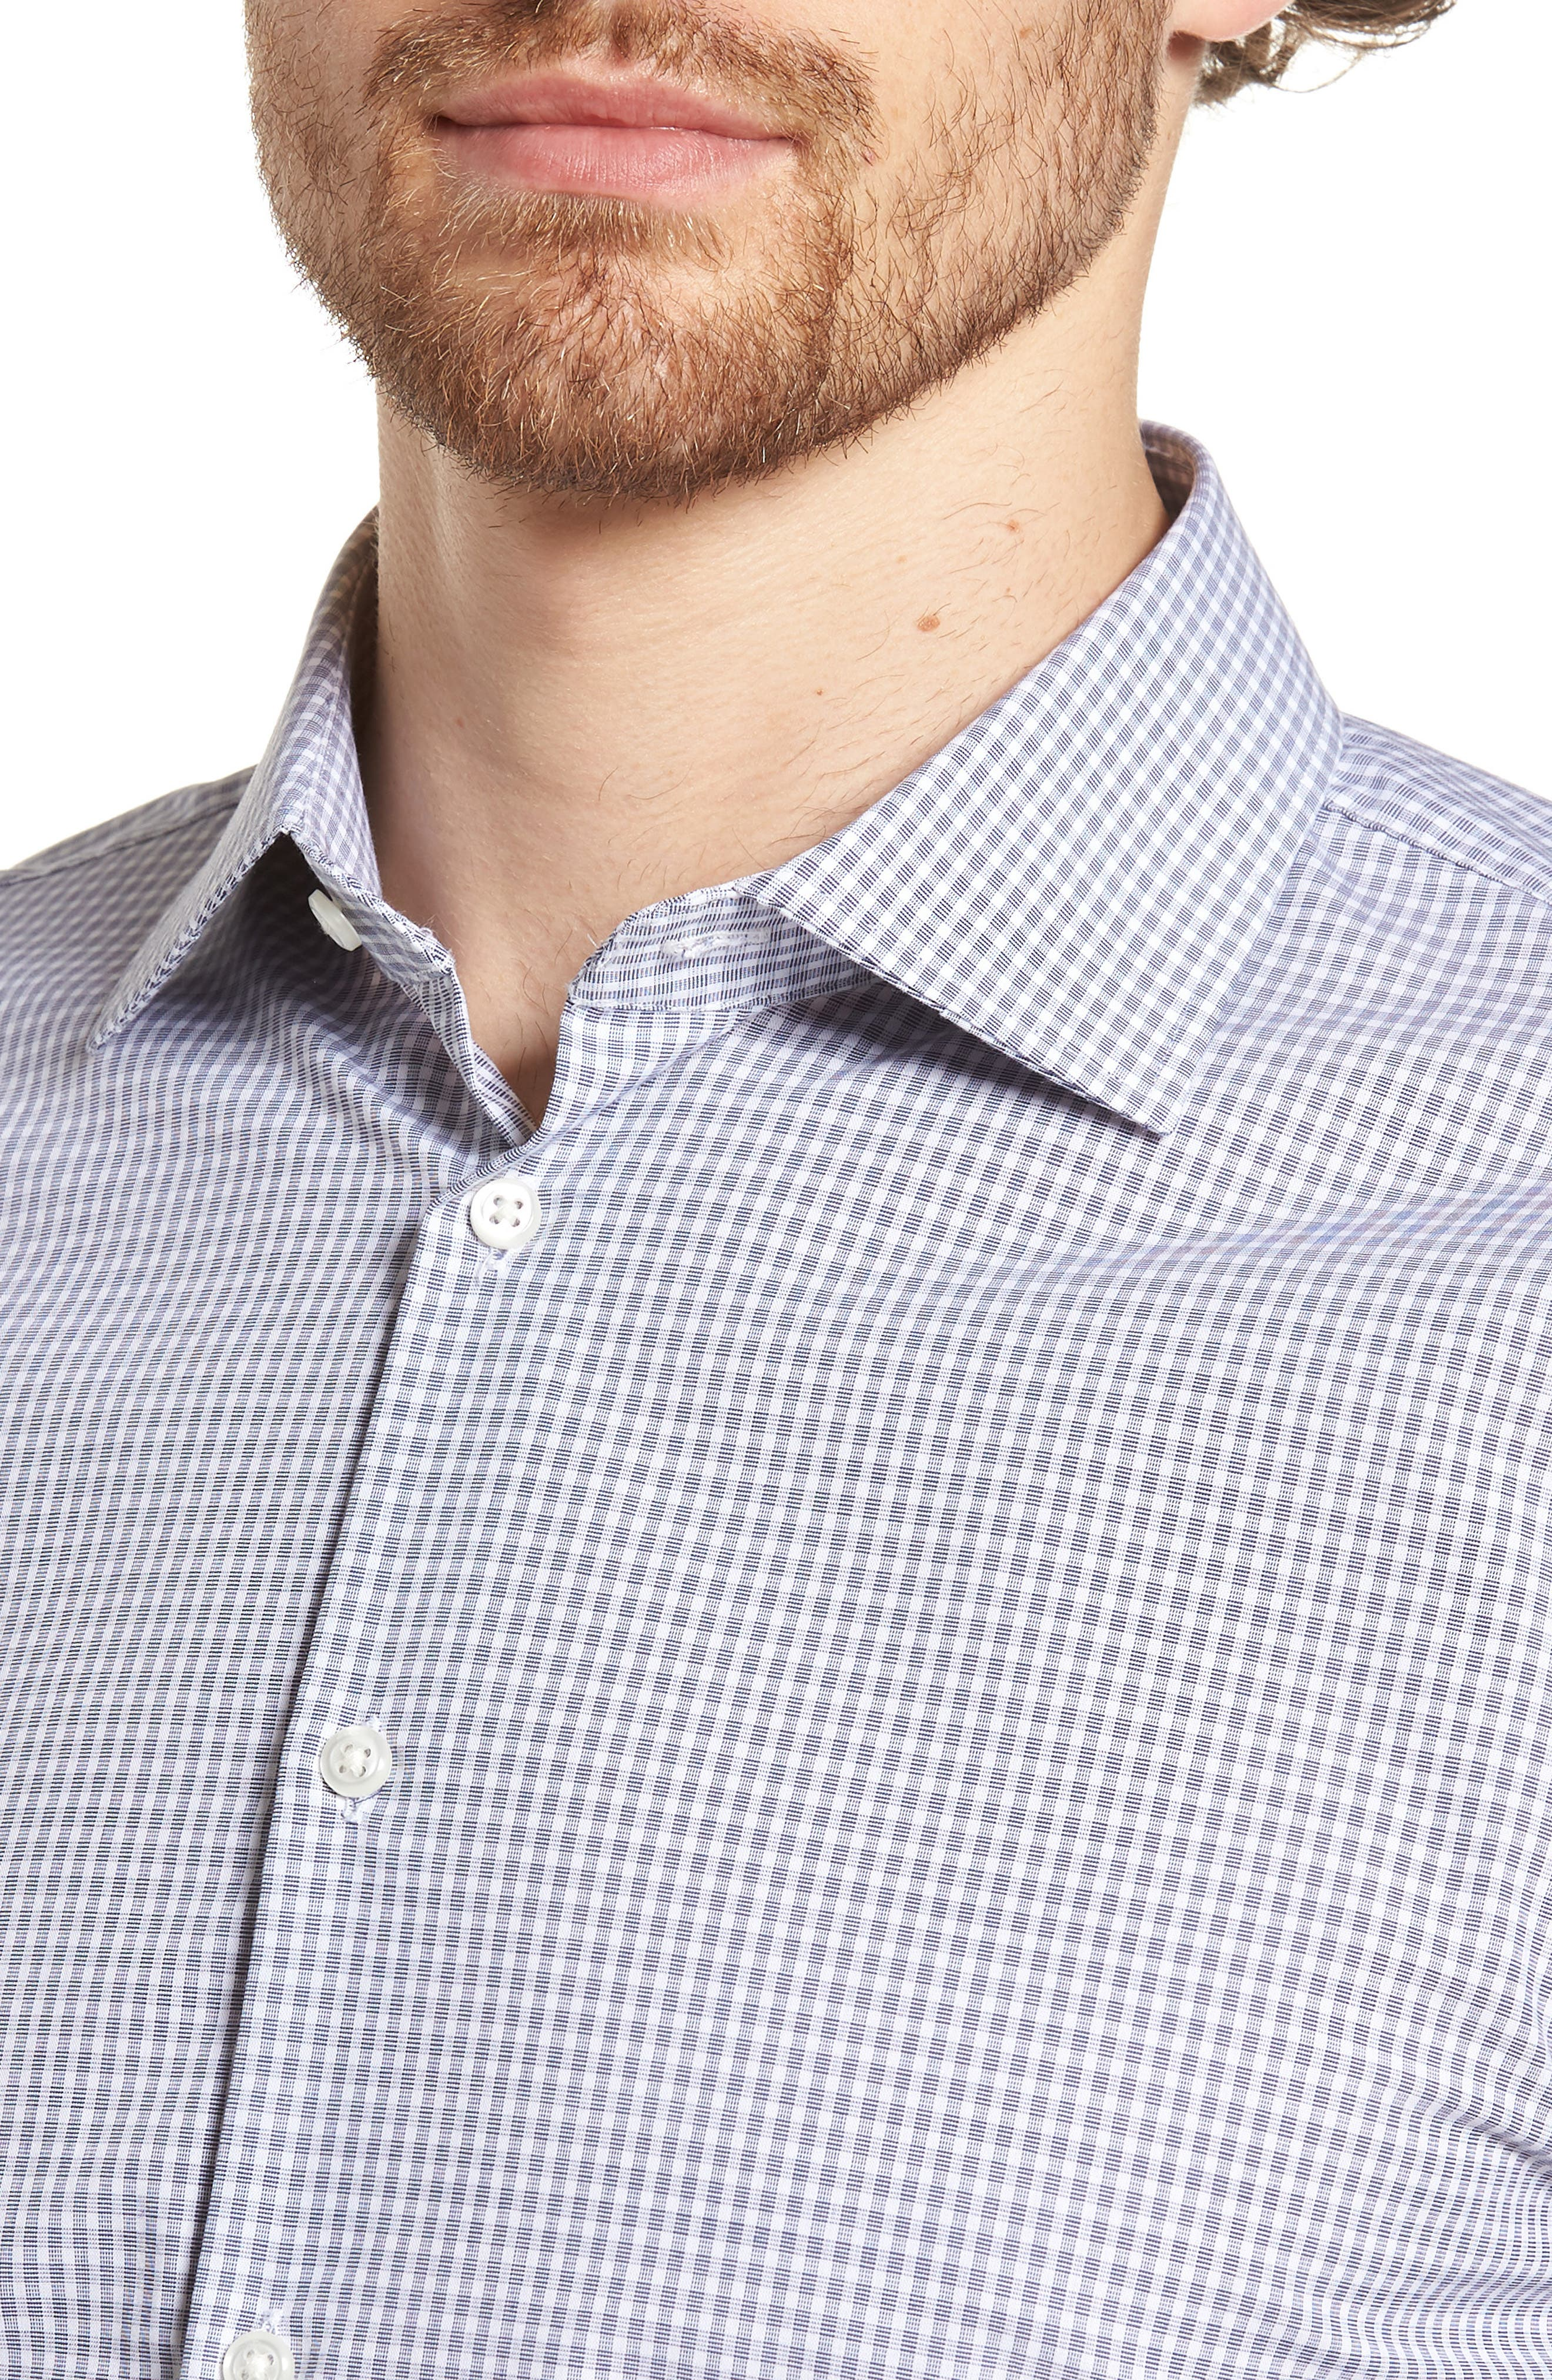 Extra Trim Fit Non-Iron Check Dress Shirt,                             Alternate thumbnail 2, color,                             410